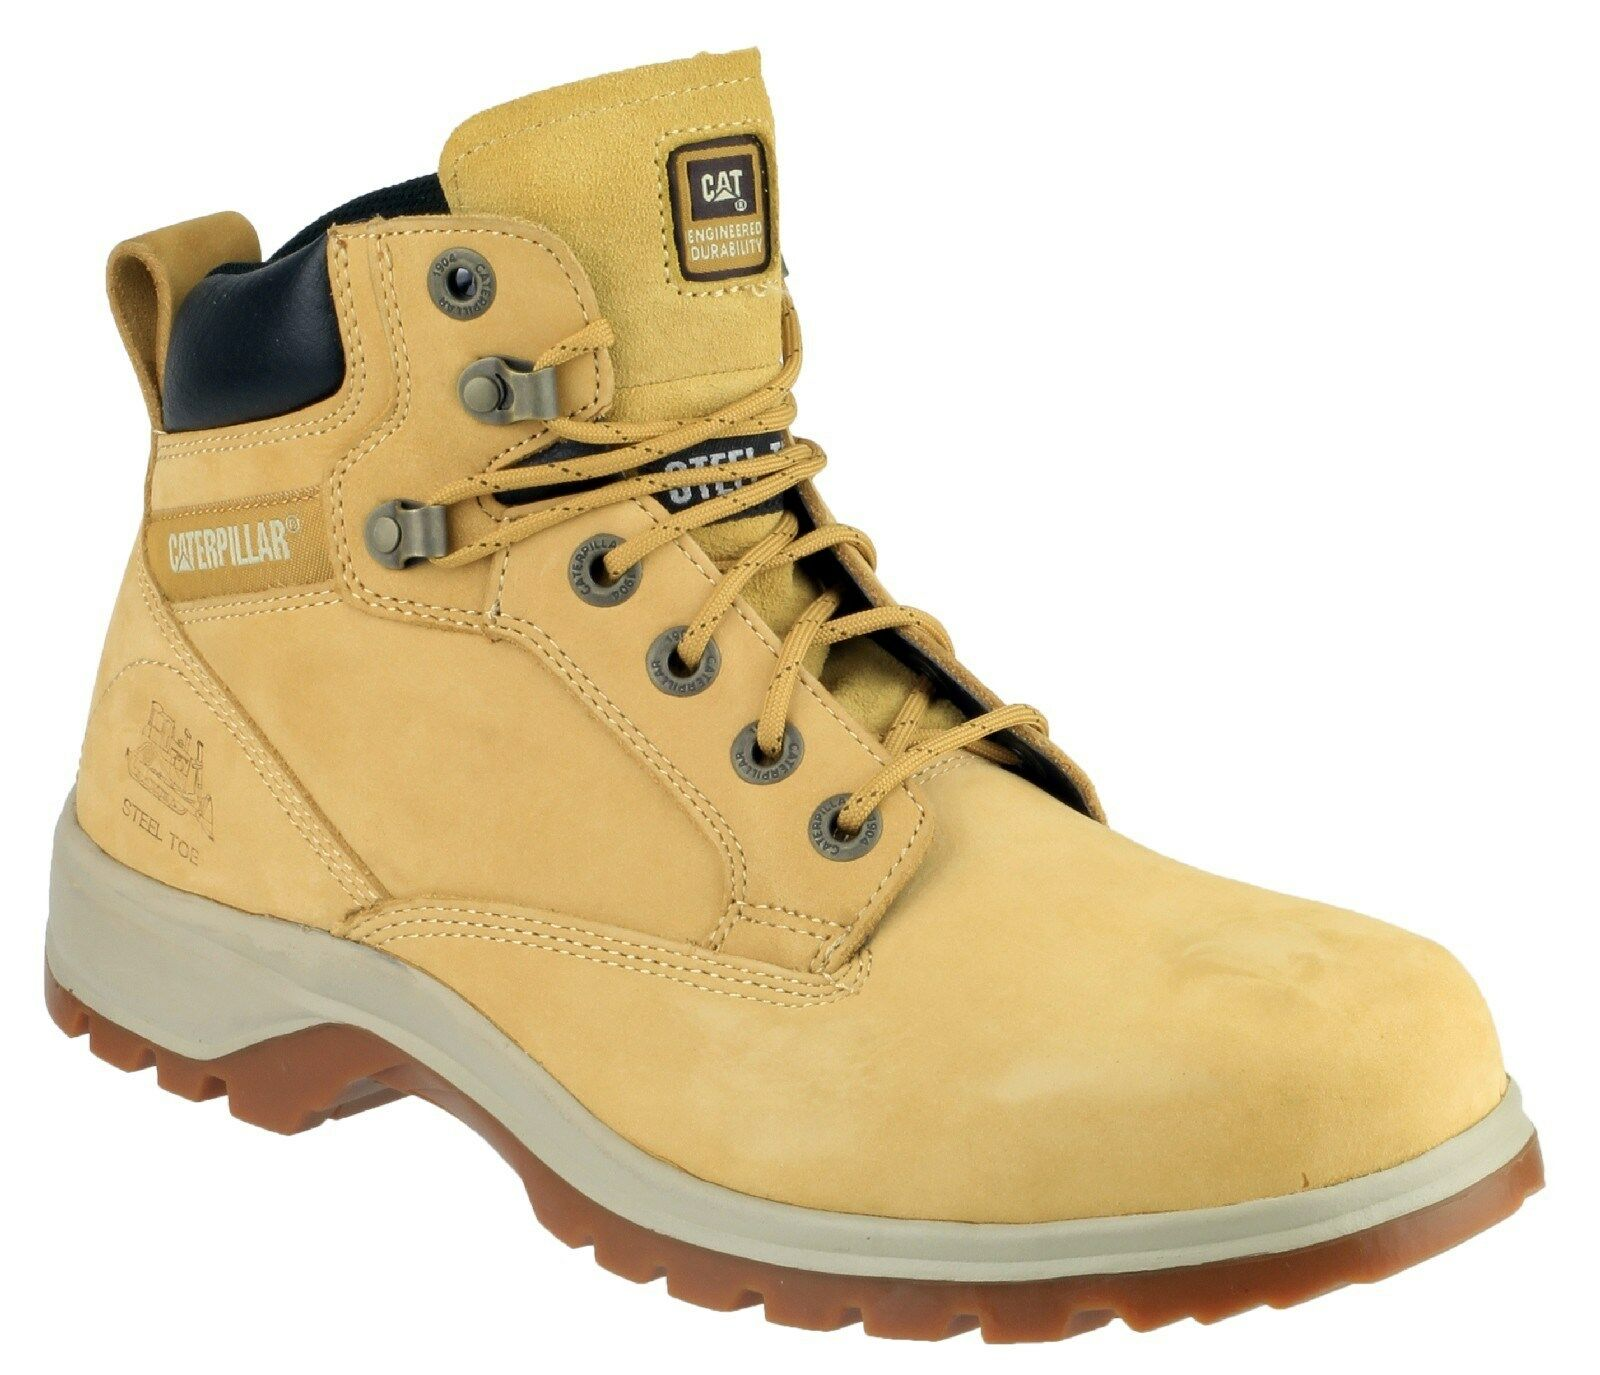 CAT Caterpillar Kitson Boots Womens Safety Work Hiking Boots Kitson UK3-8 e314af